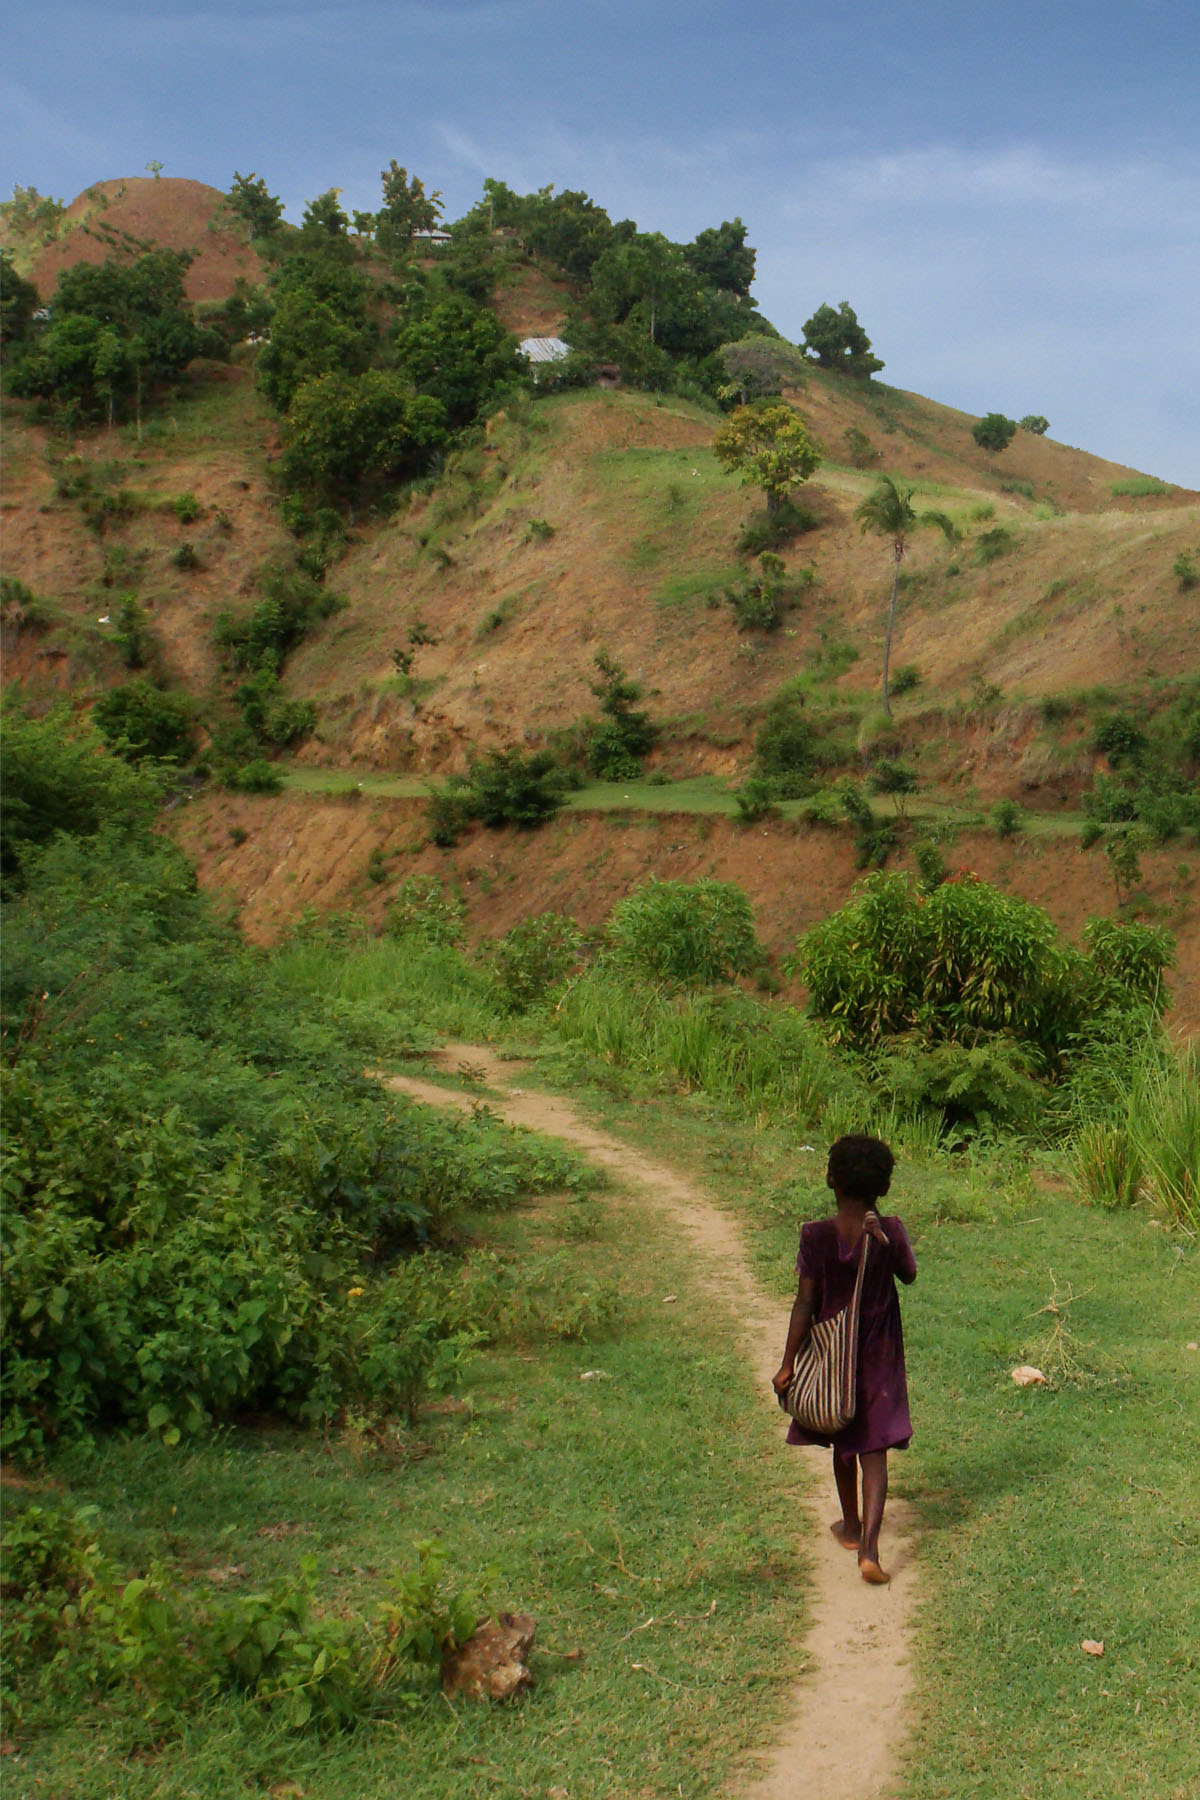 A girl walks along a path on her way to school in the upper watershed of Les Anglais. Until recently, there had been no maps showing where the schools are located, how many students attended, or any other critical information for improving schools facilities.